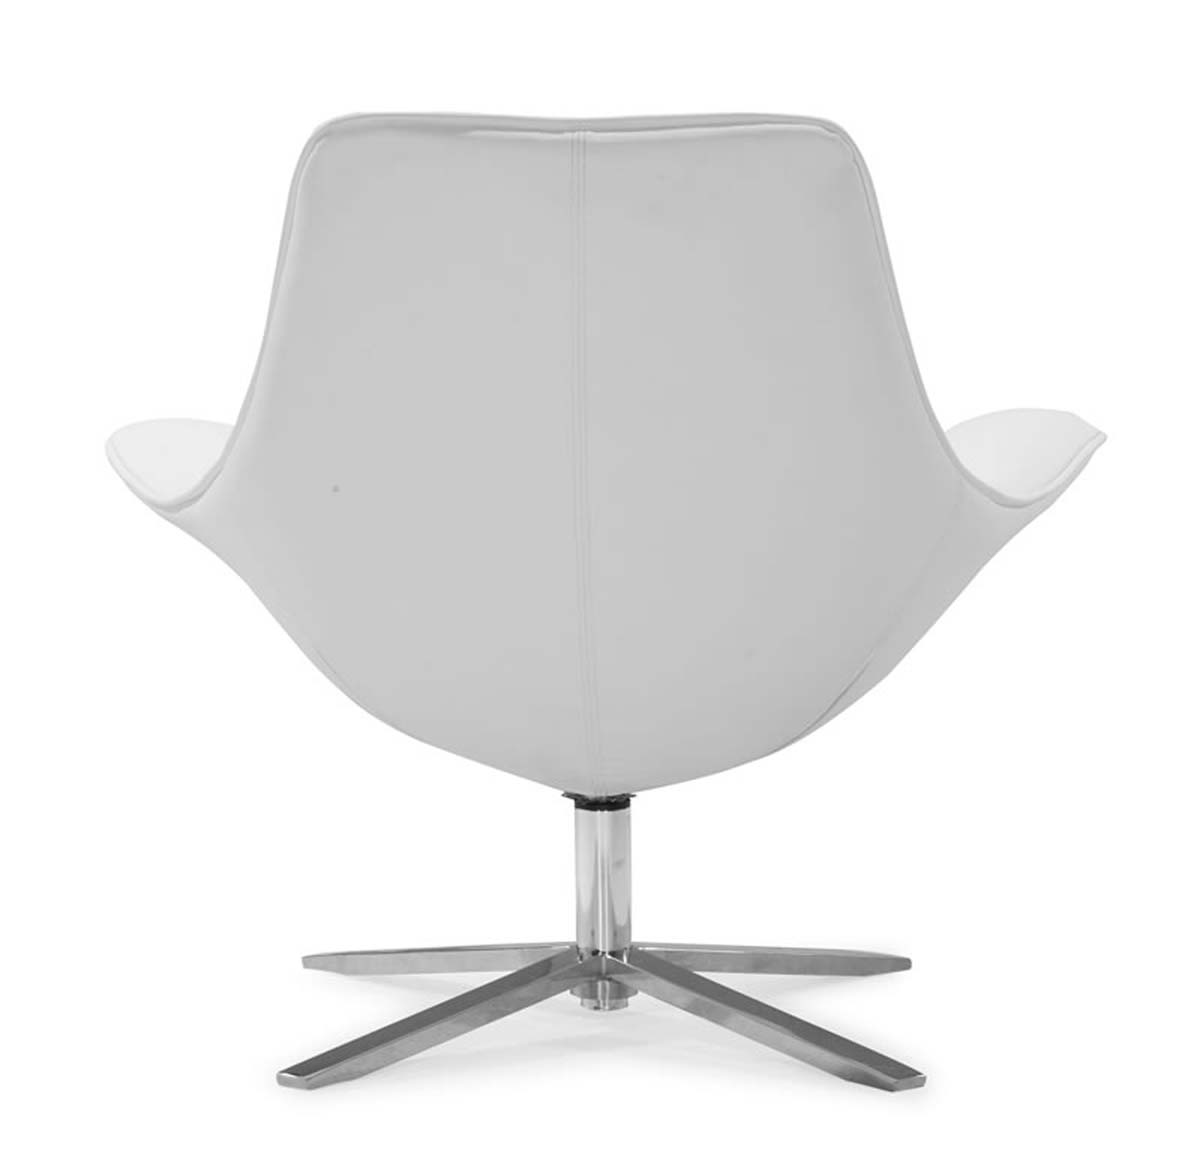 Zuo Modern Vital Lounge Chair - White